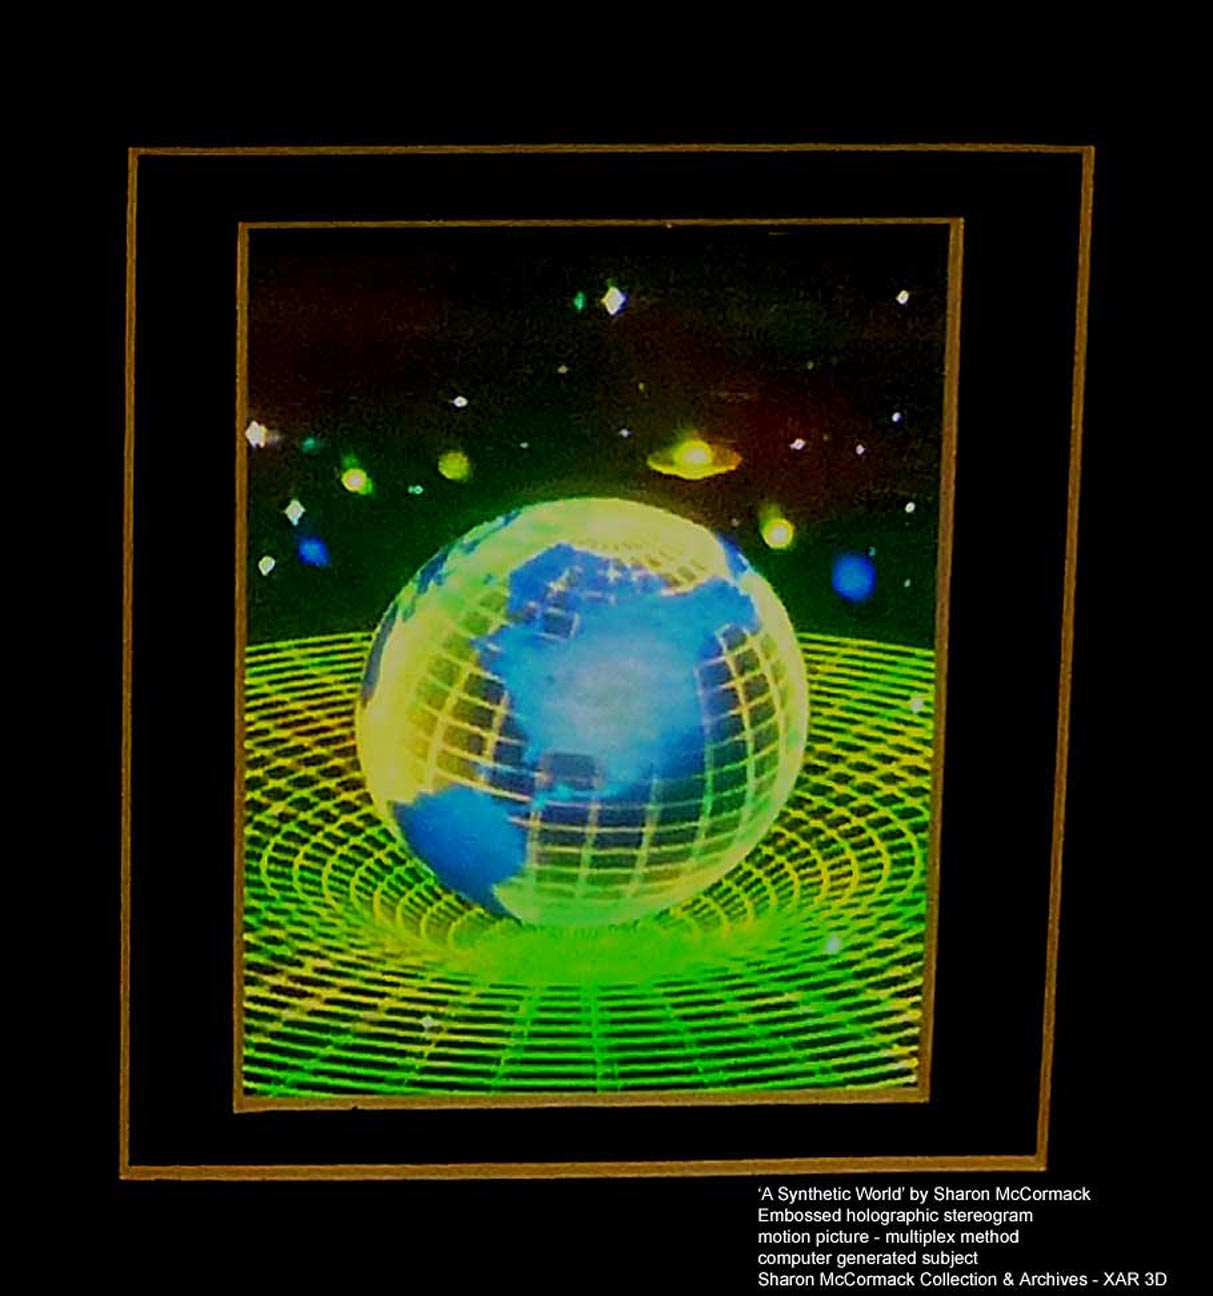 Holographic Art And Projects By Al Razutis In Stereoscopic 3D